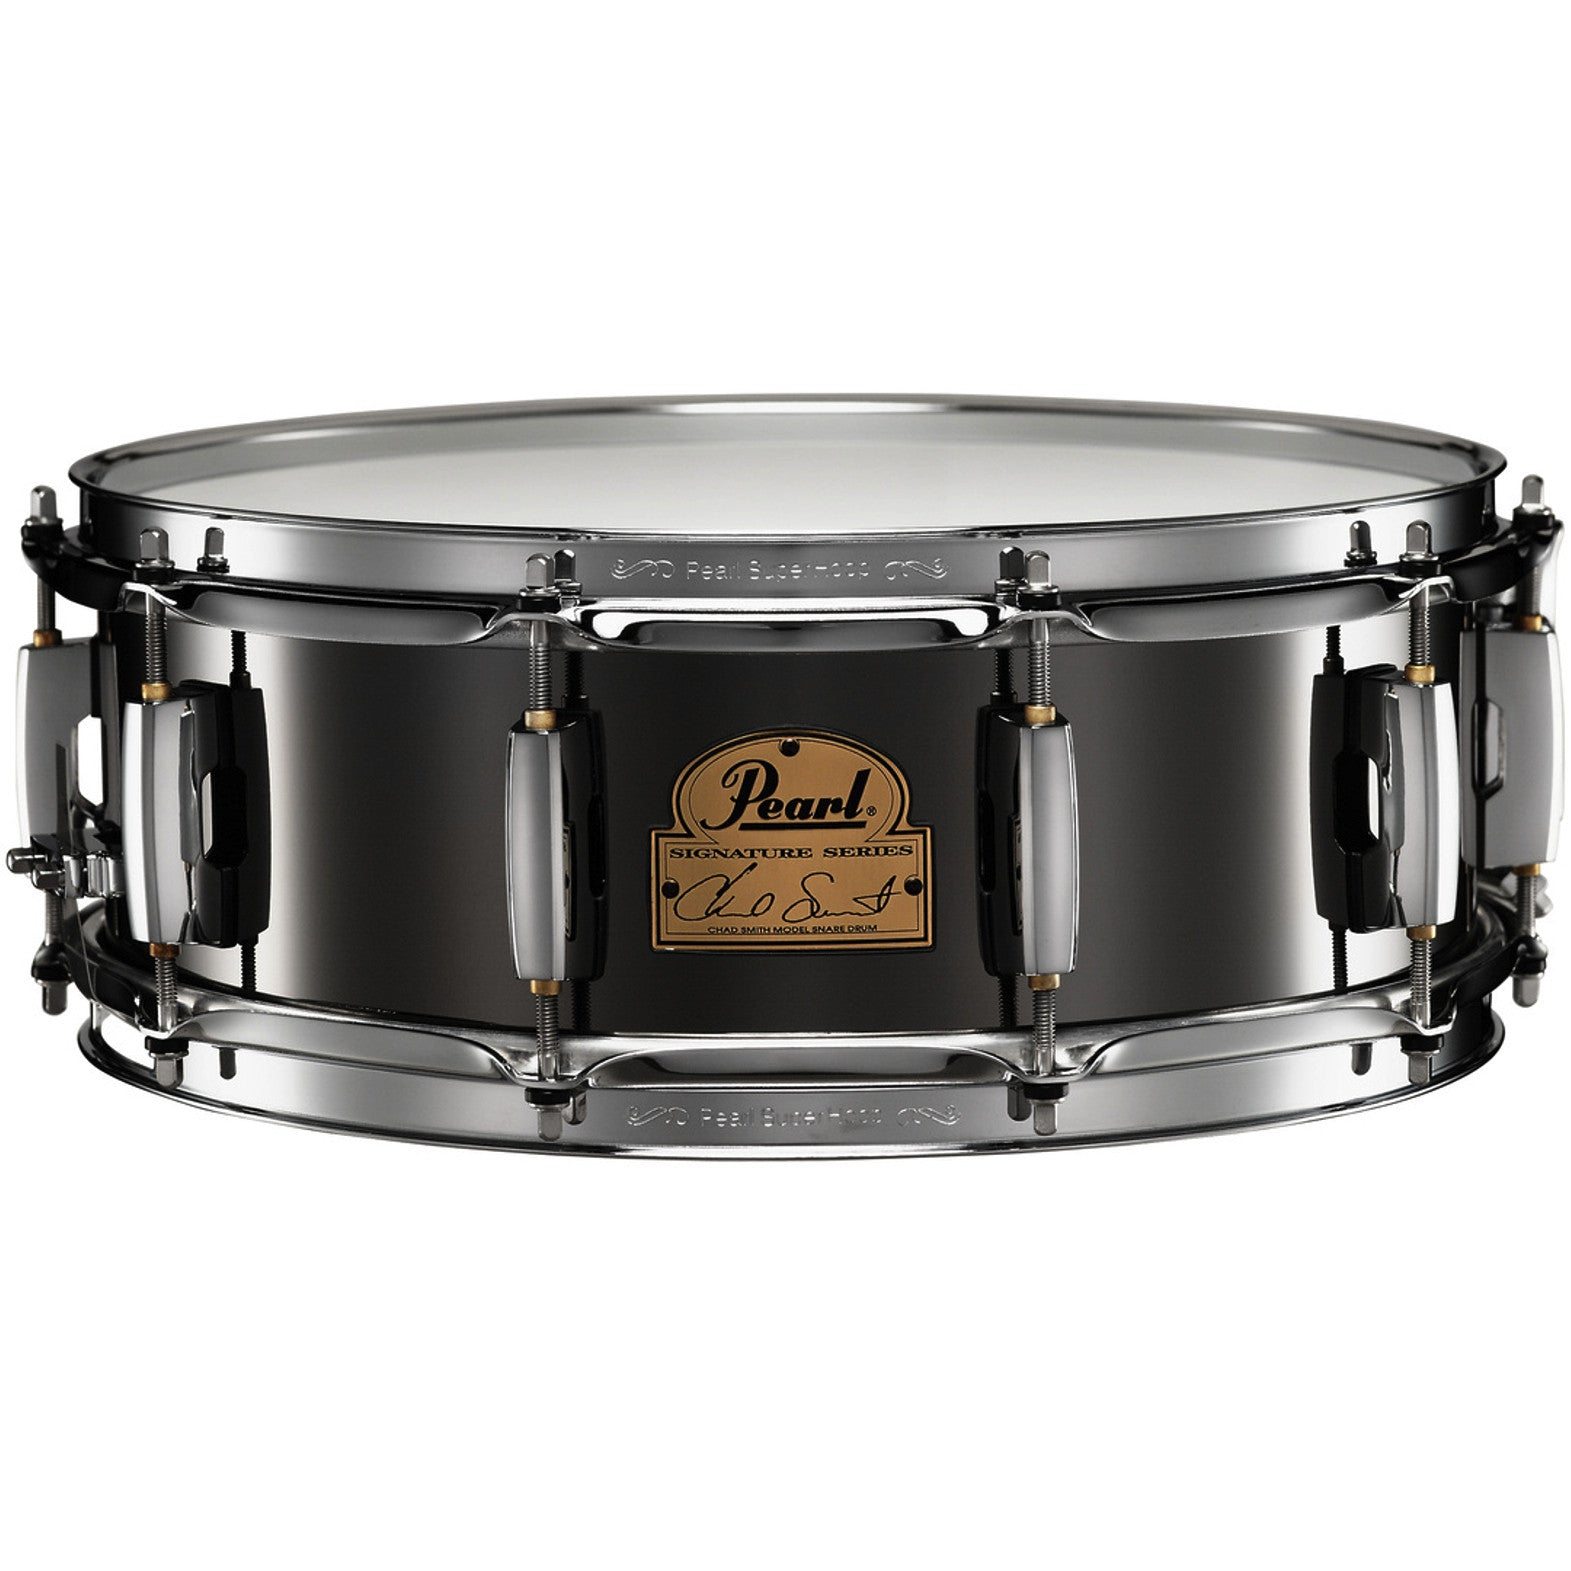 Pearl Chad Smith CS1450 Signature Snare Drum